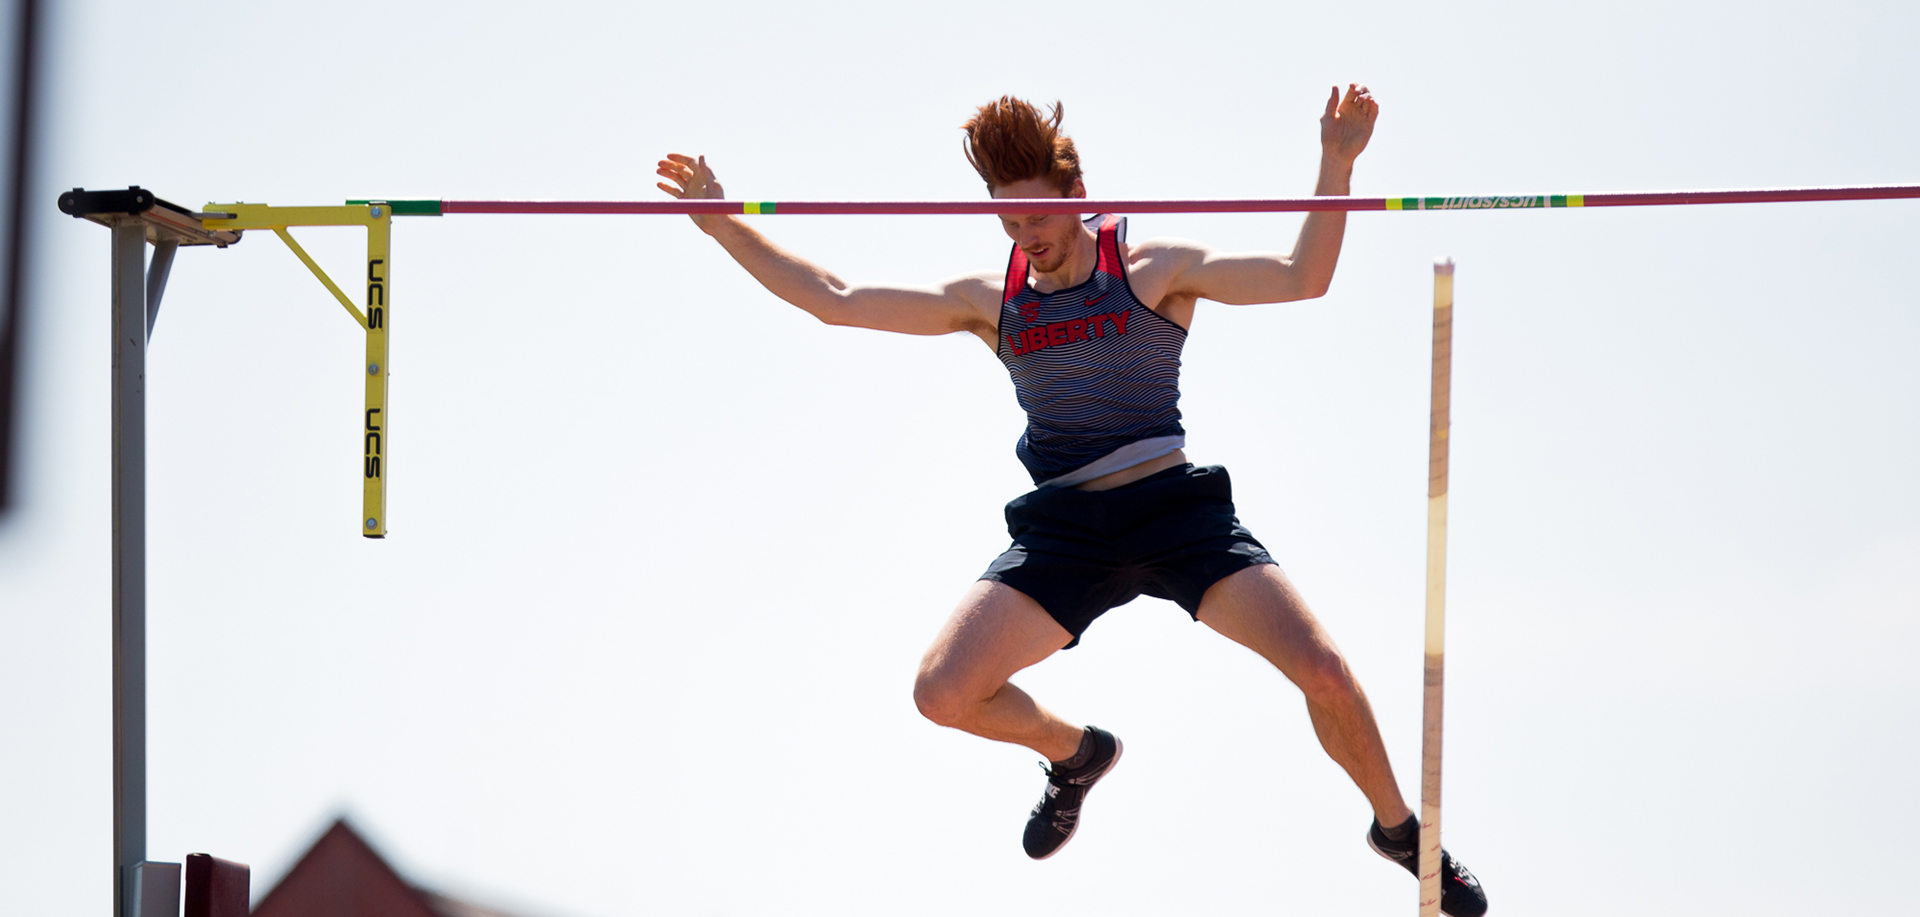 Carson Waters celebrates his meet-record pole vault clearance of 17-0.75 on Saturday.